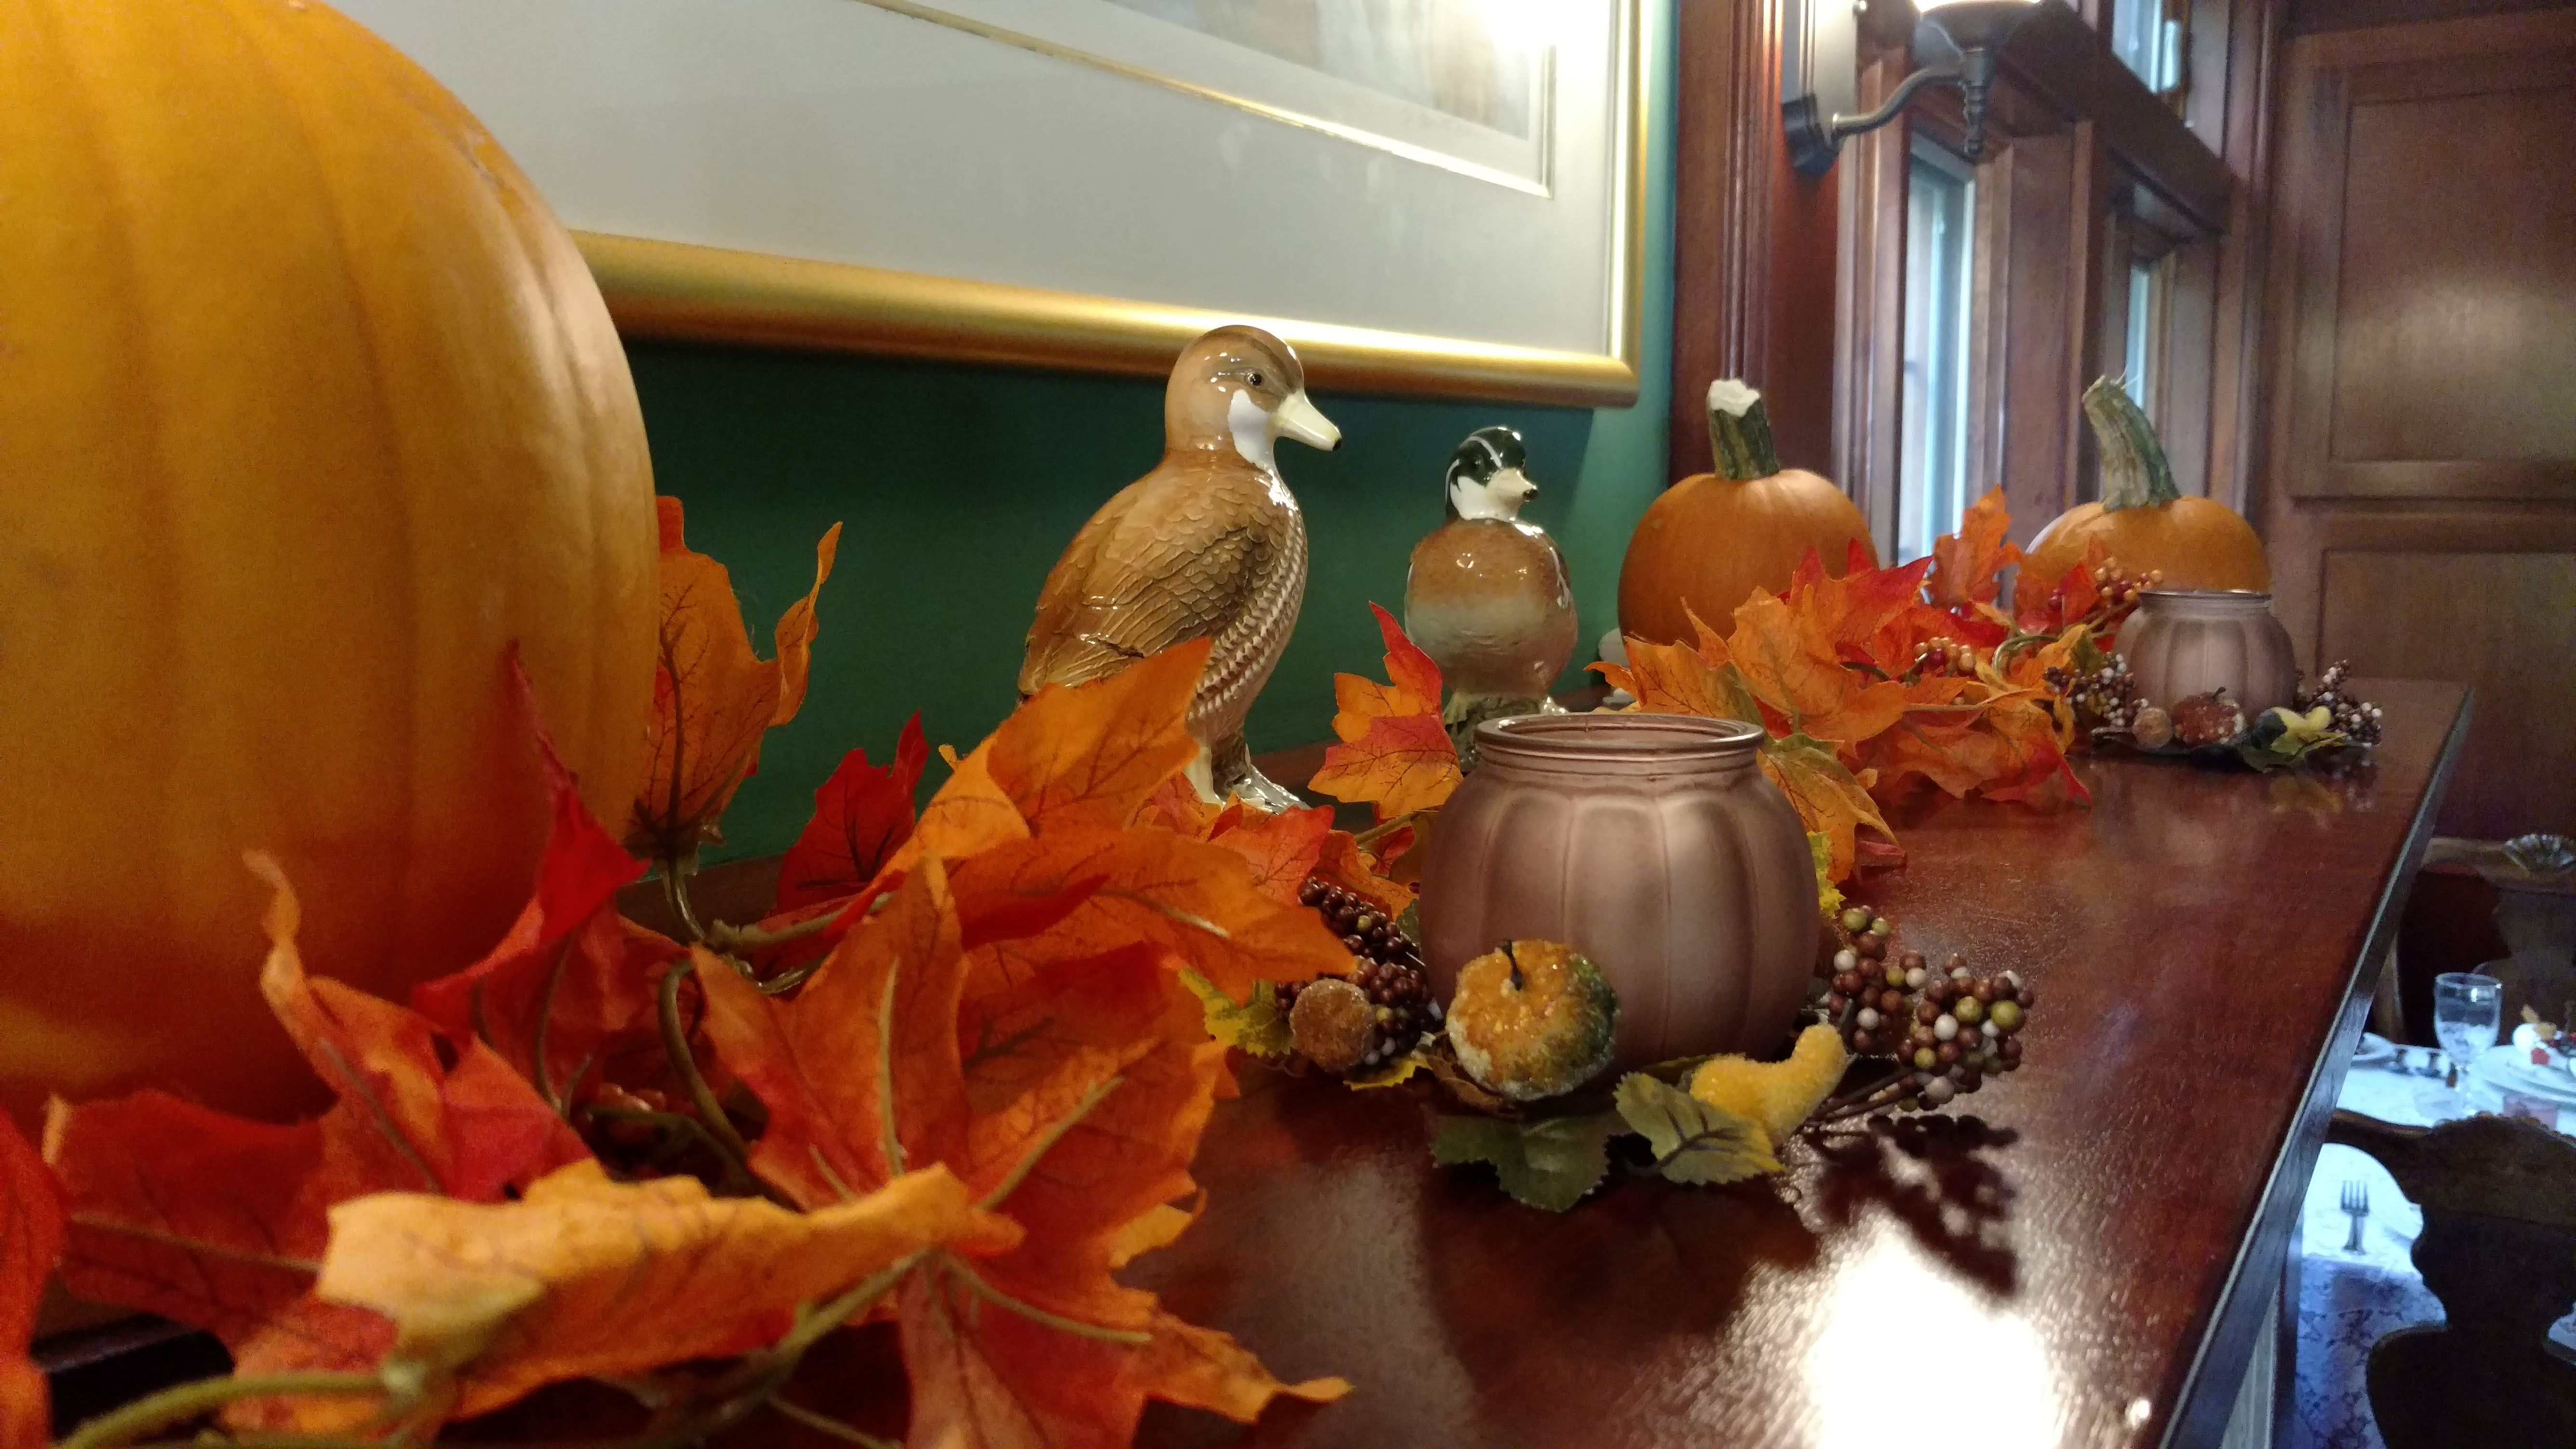 Fireplace mantle at Isaiah Jones Homestead B&B - decorated for fall with pumpkins, colorful silk maple leaves, and carved ducks.